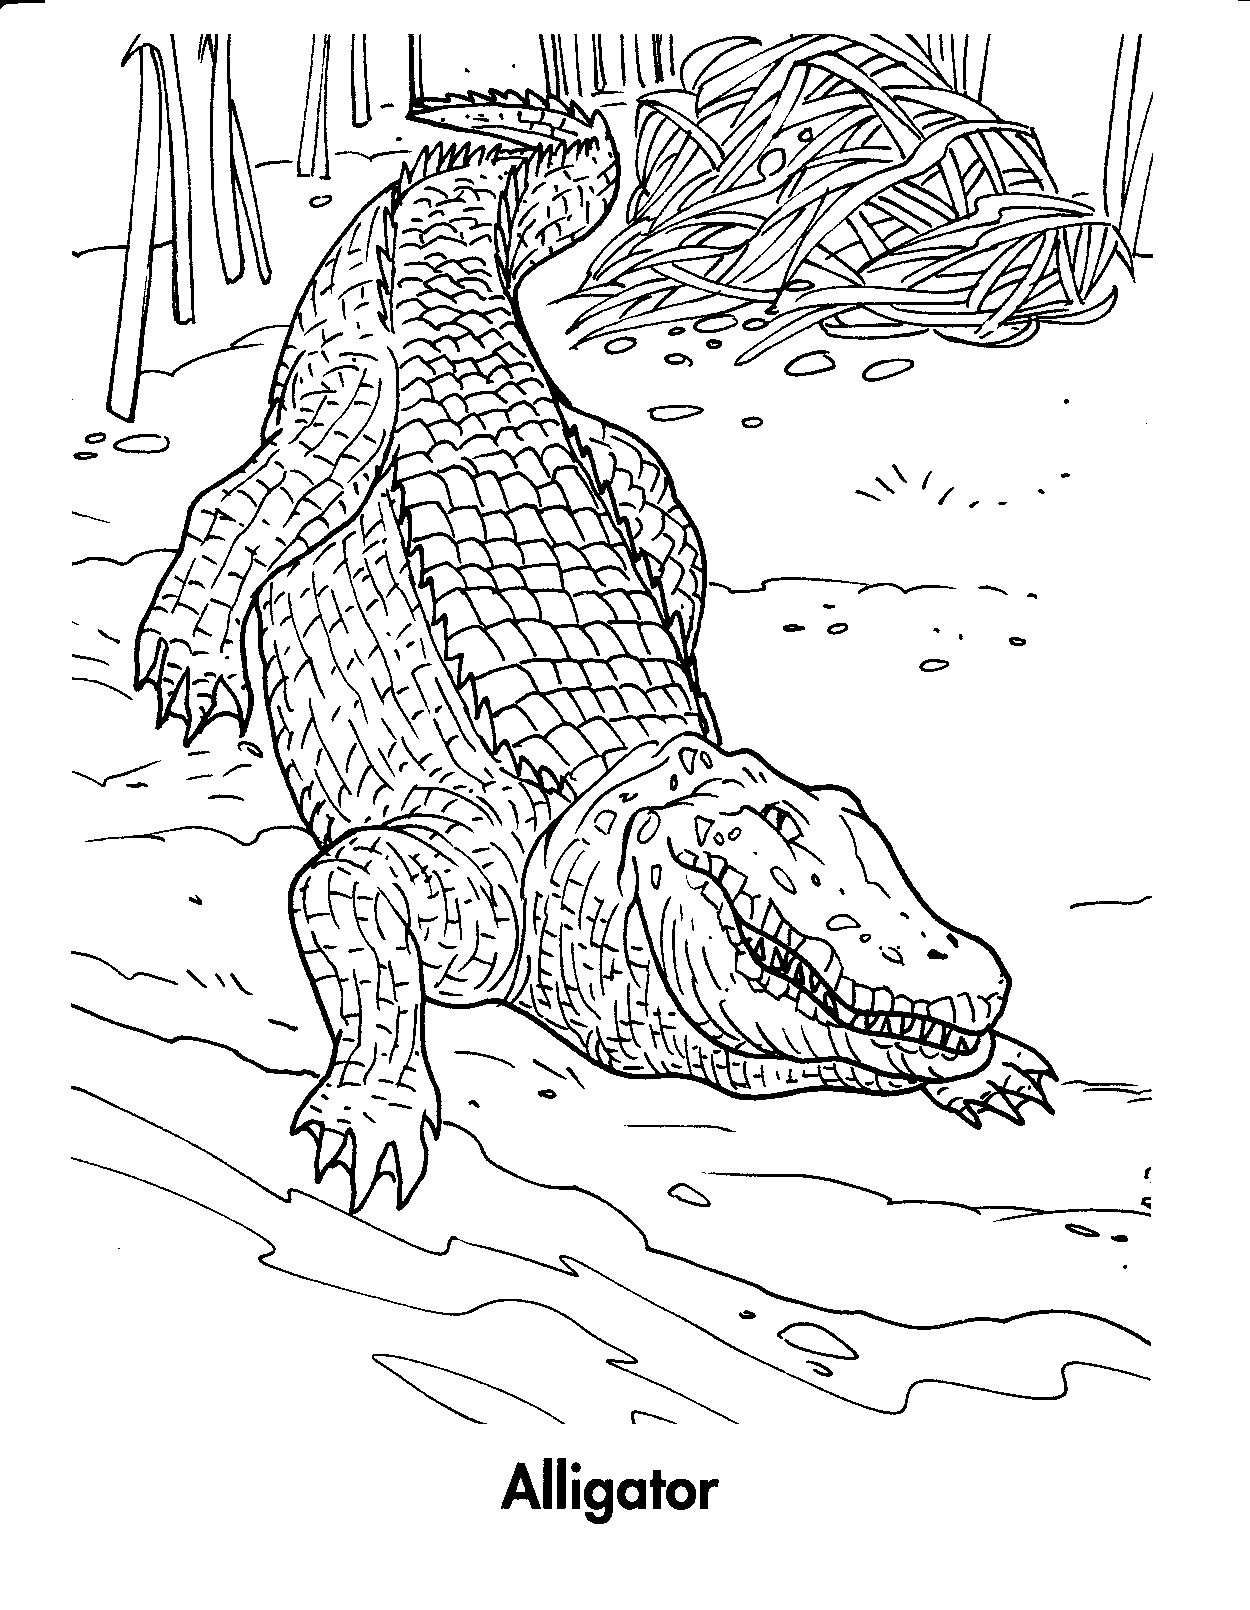 crocodile coloring pages to print free printable crocodile coloring pages for kids to print crocodile pages coloring